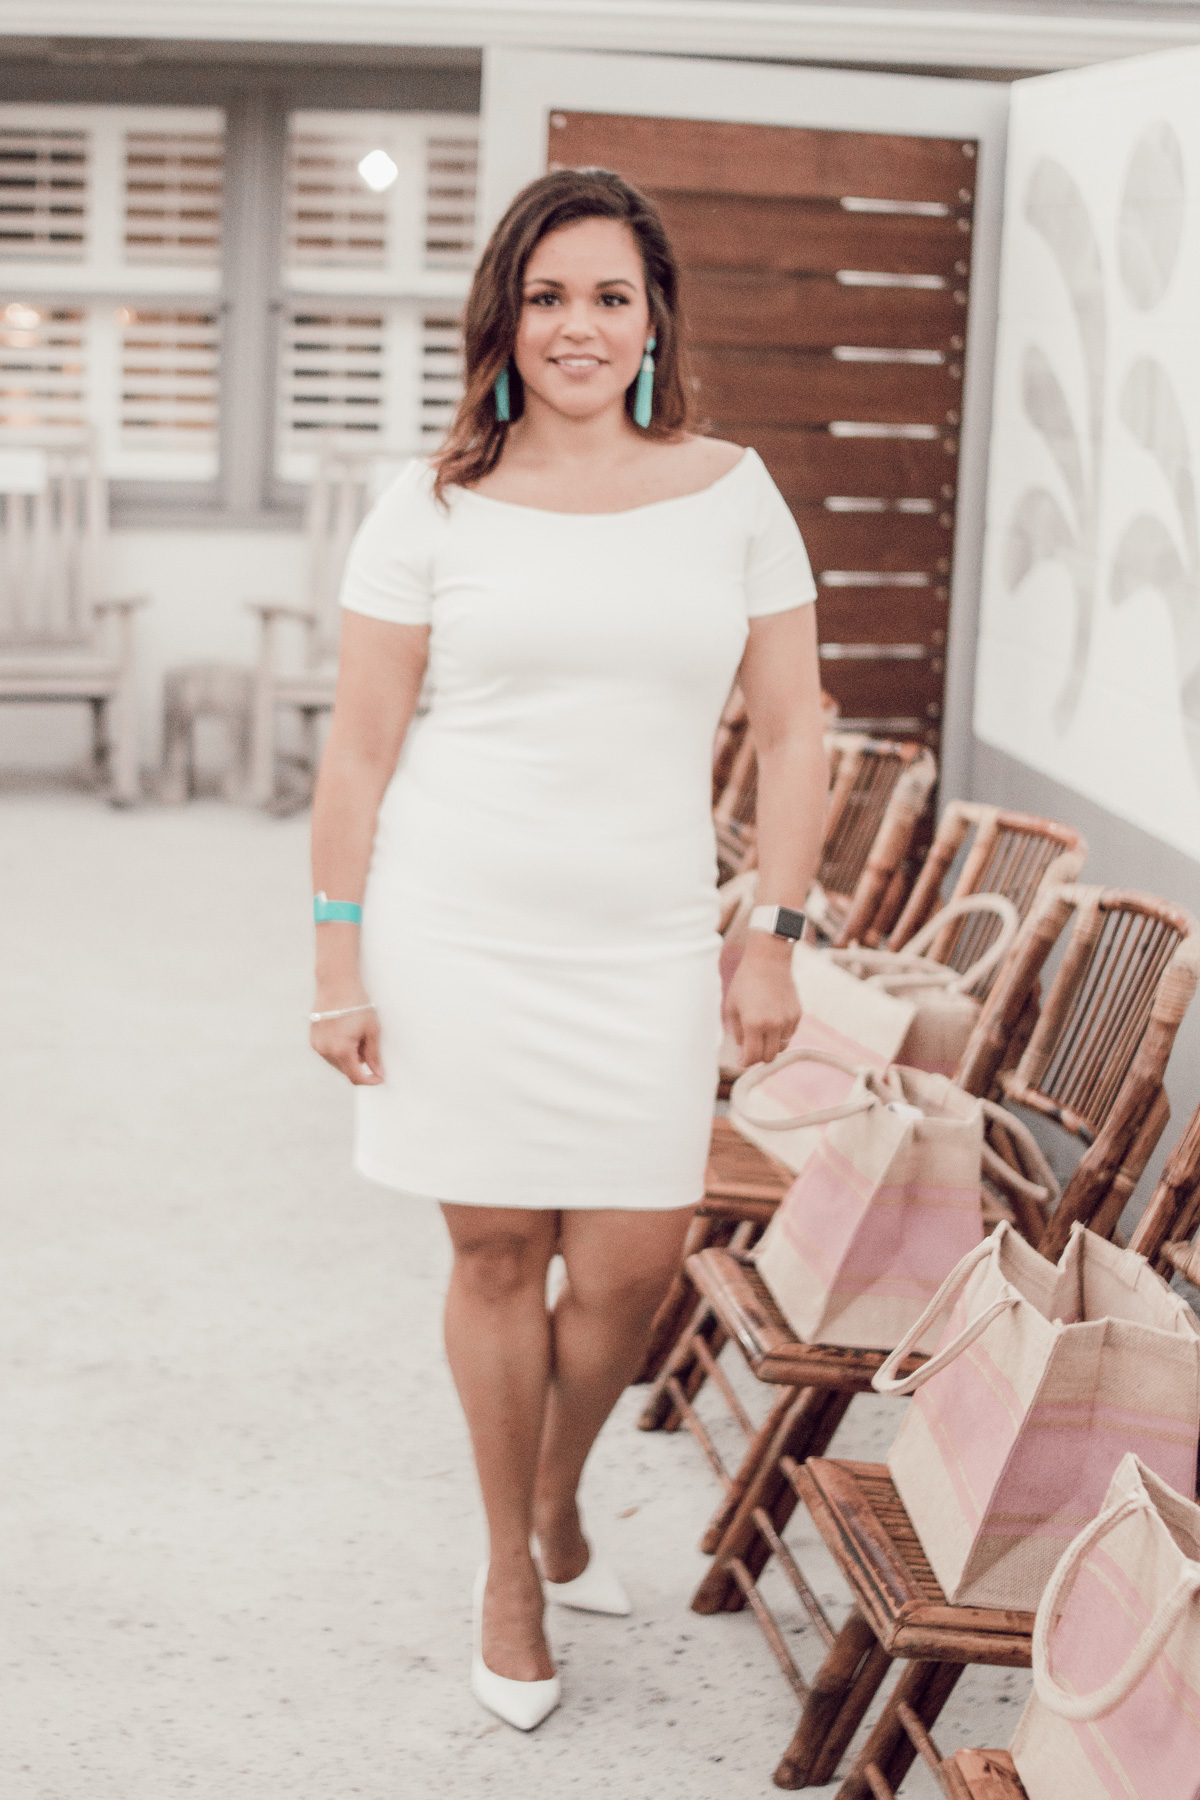 Lisette wearing white bodycon dress